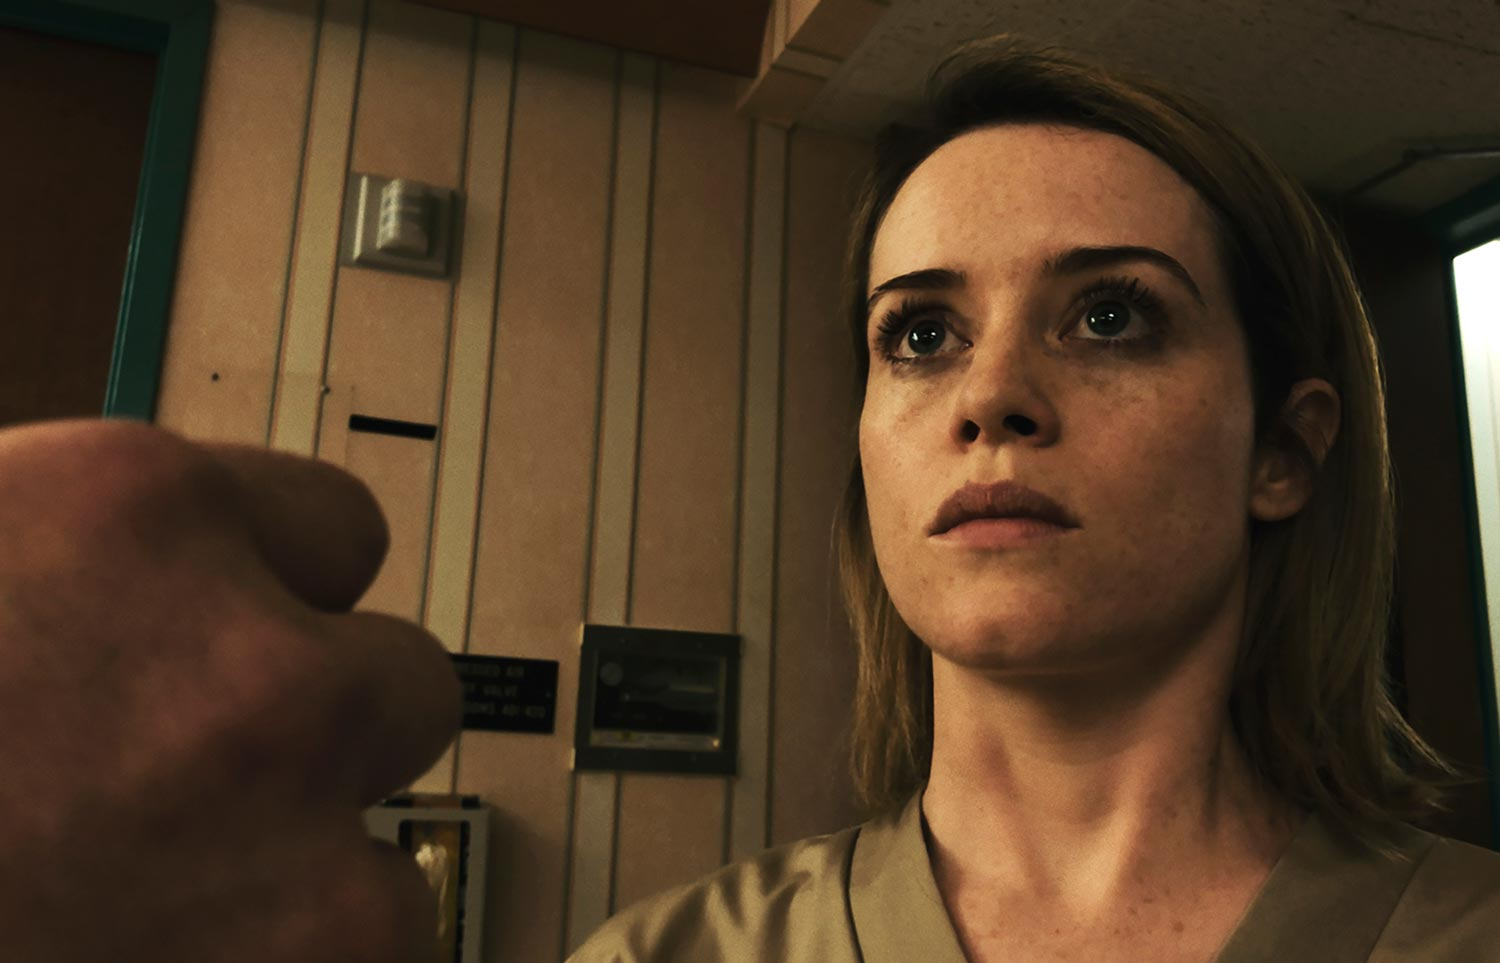 Claire Foy wrongly incarcerated in an asylum in Unsane (2018)